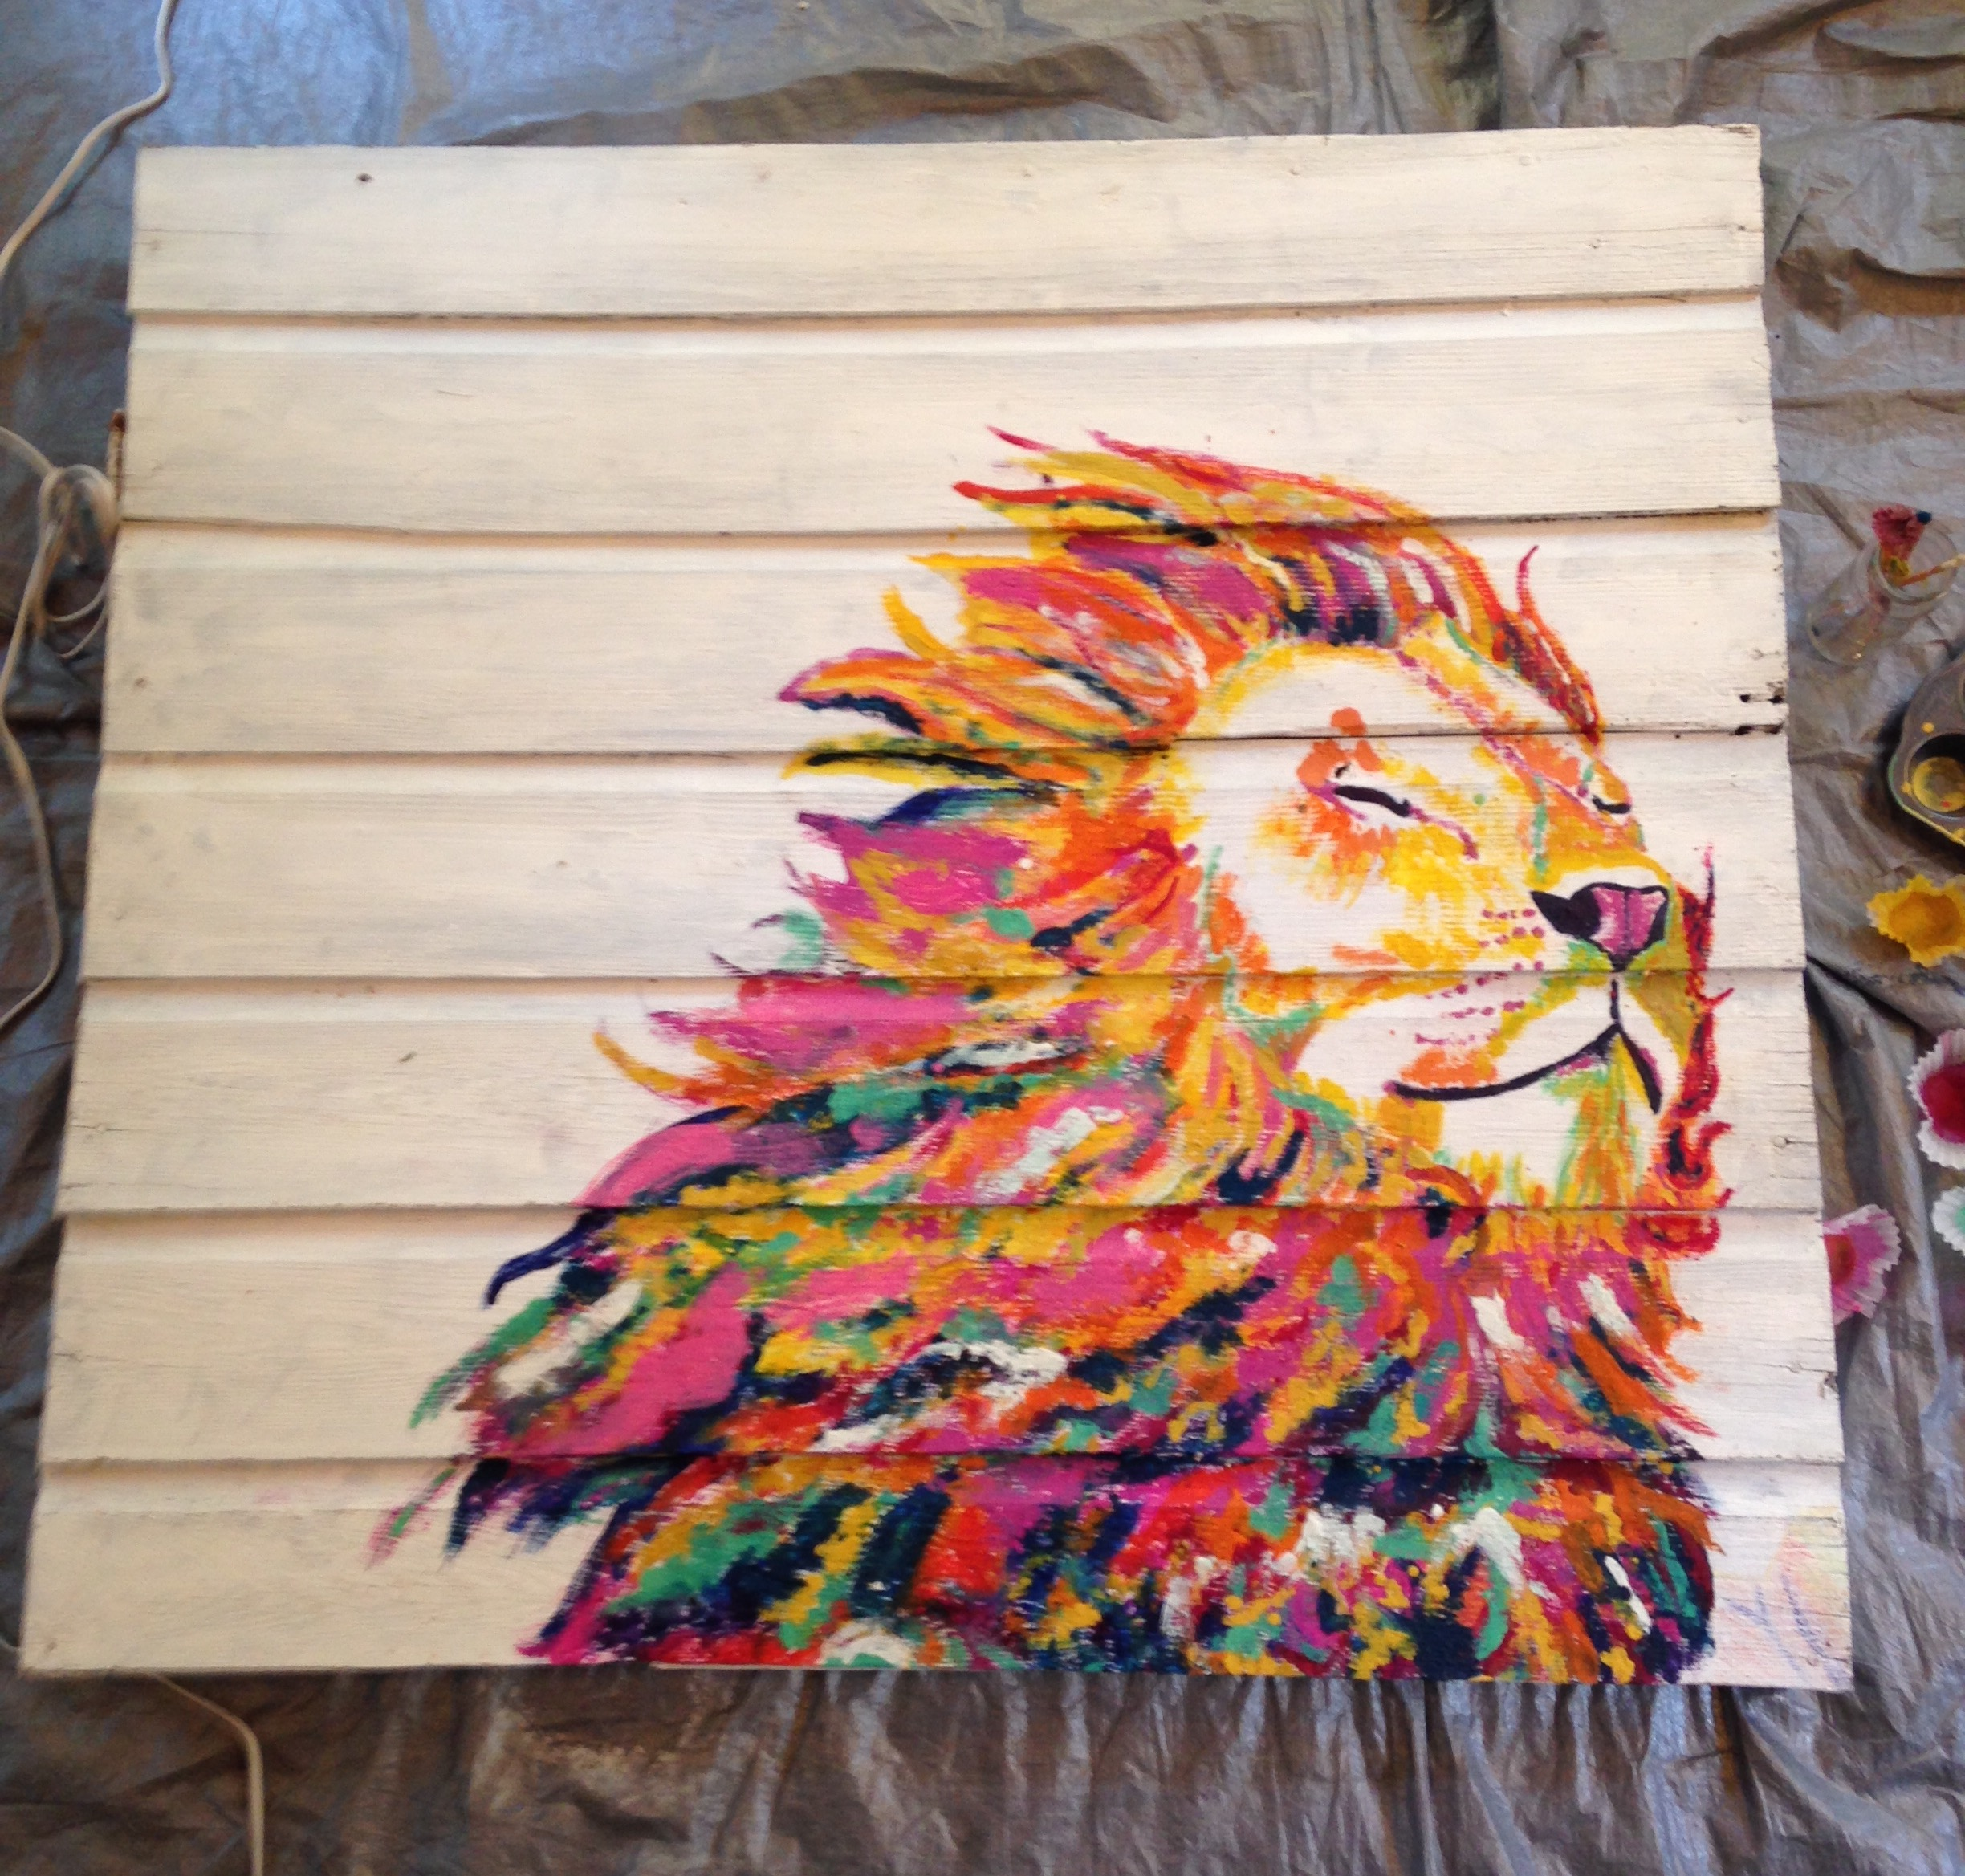 Work in progress: Laughing Lion Heart/4'x4'/Melted Crayon on Barn wood/2017